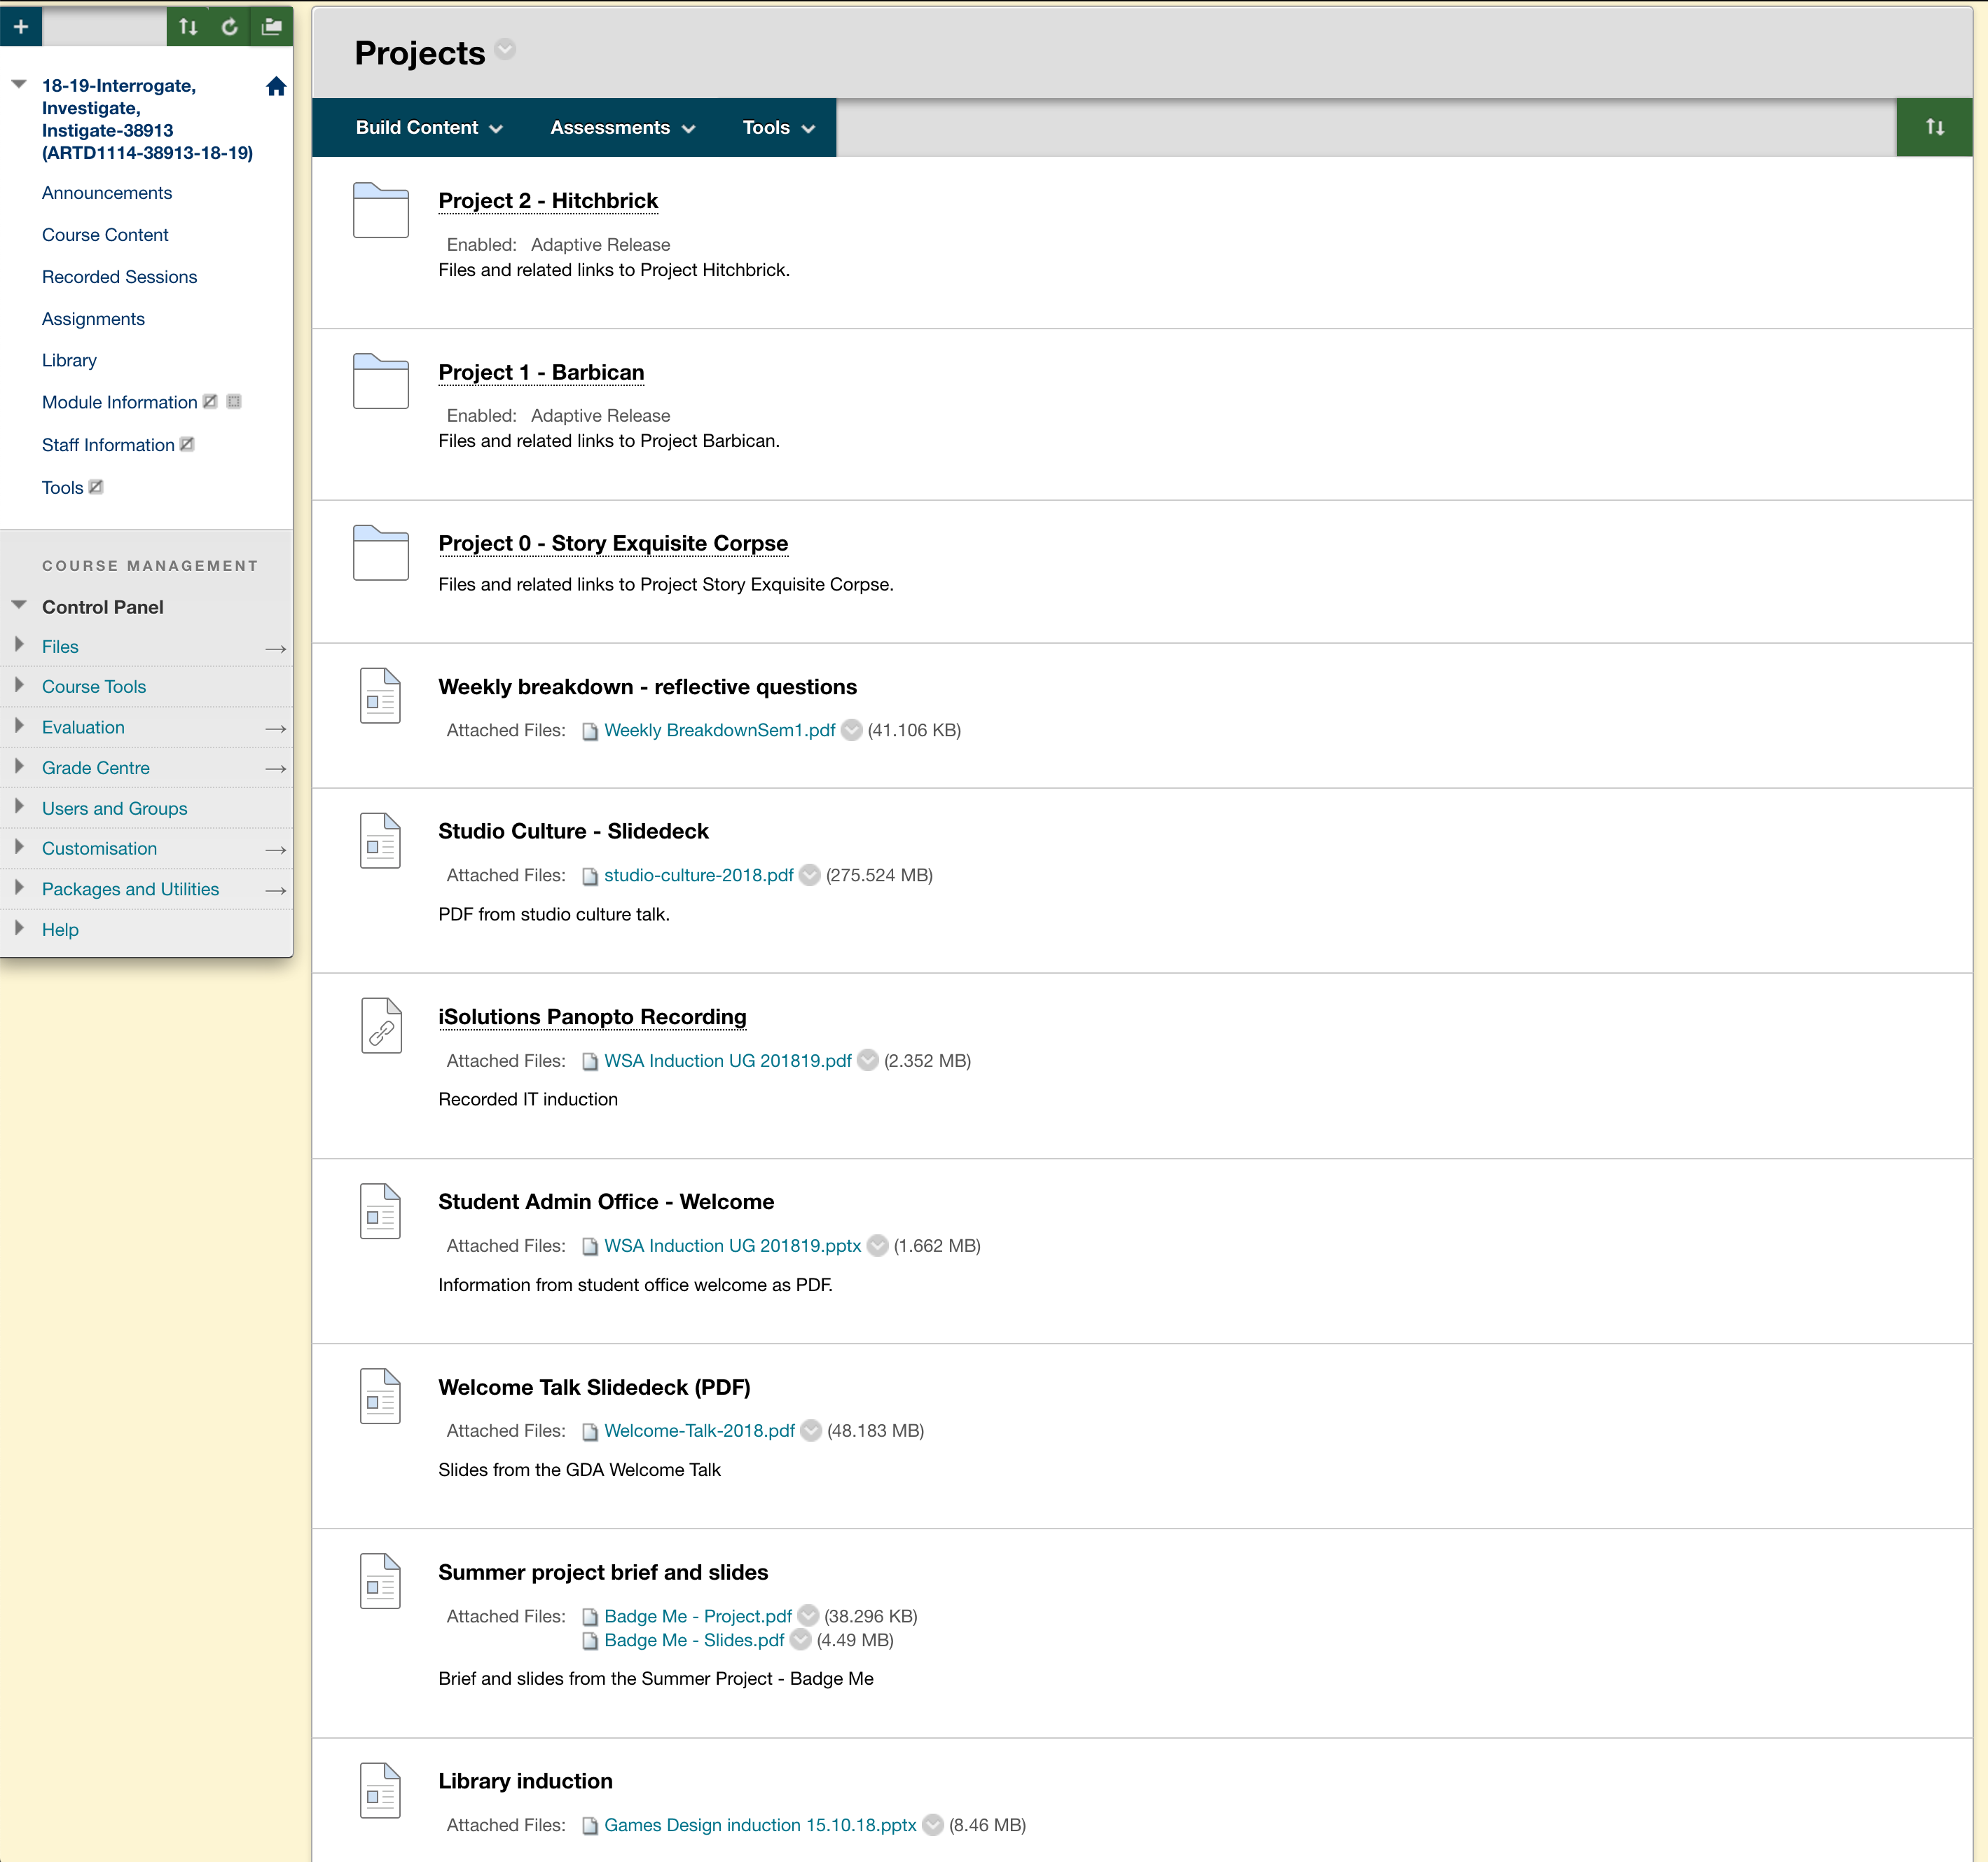 Figure 6: Shows the folder and files structure from within Blackboard